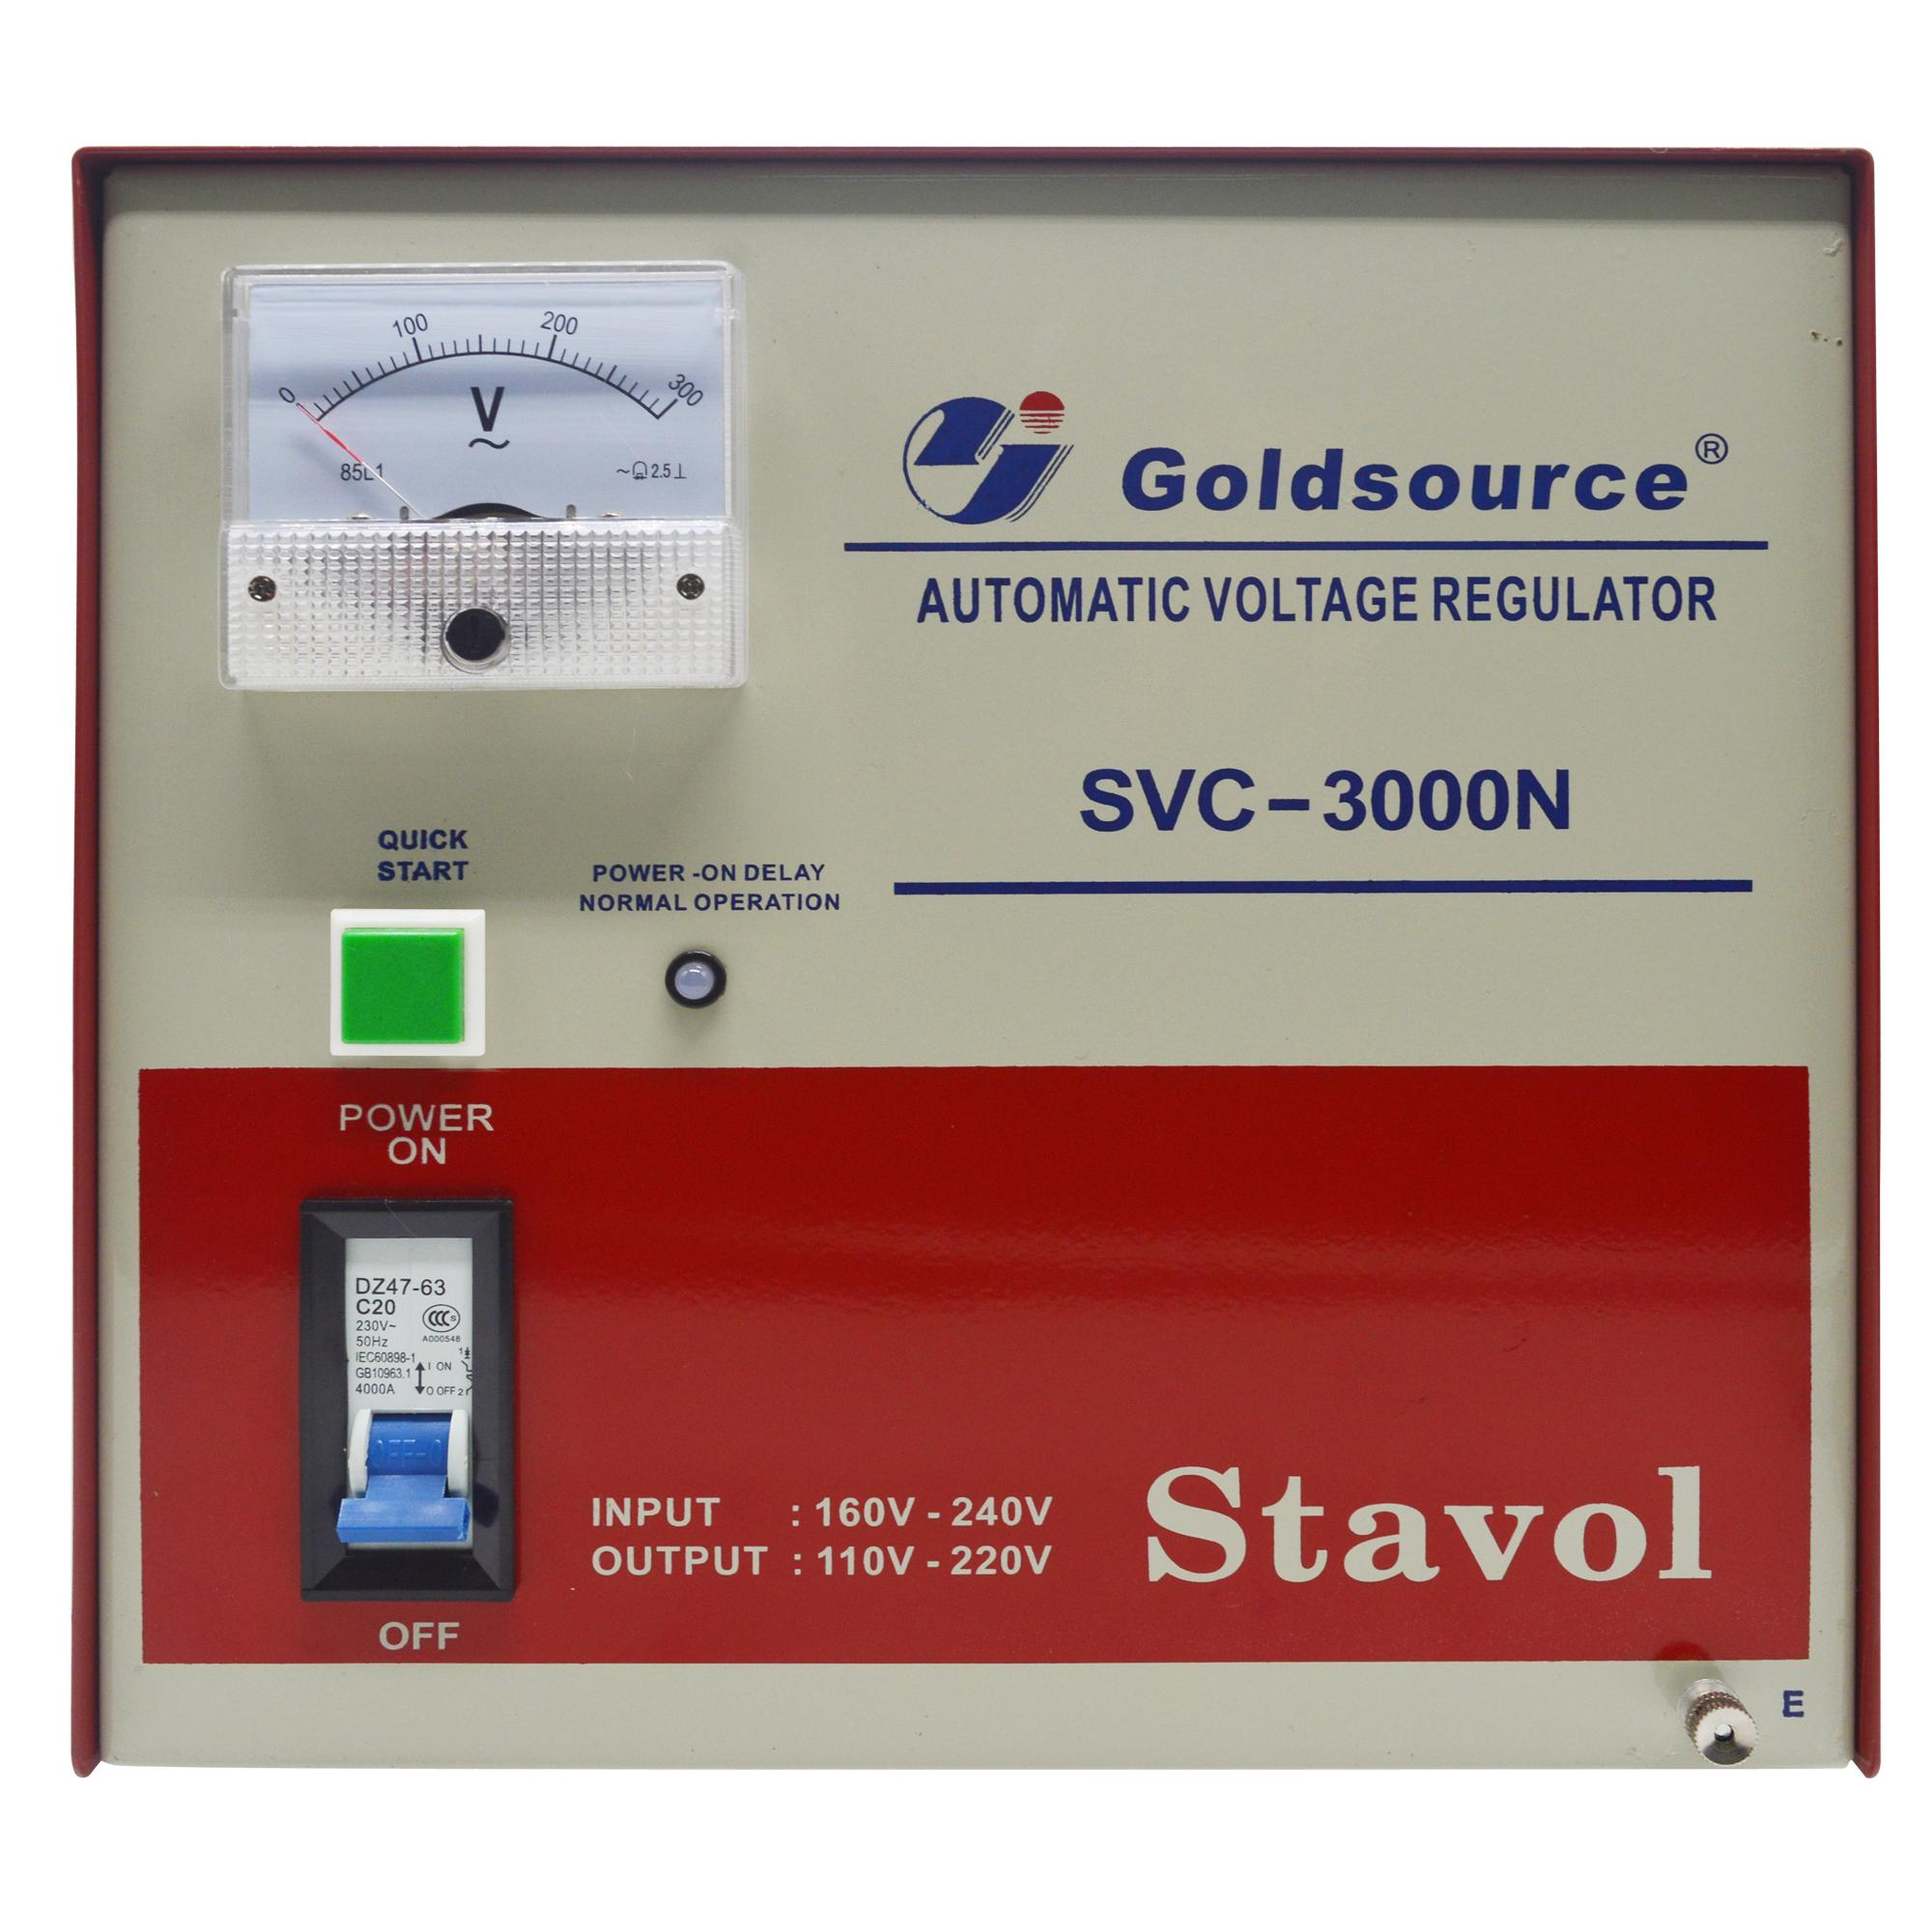 Goldsource Philippines Price List Power Supply For Regulated 220vac To 24vdc Using Voltage Regulator Avr With On Delay 3000w